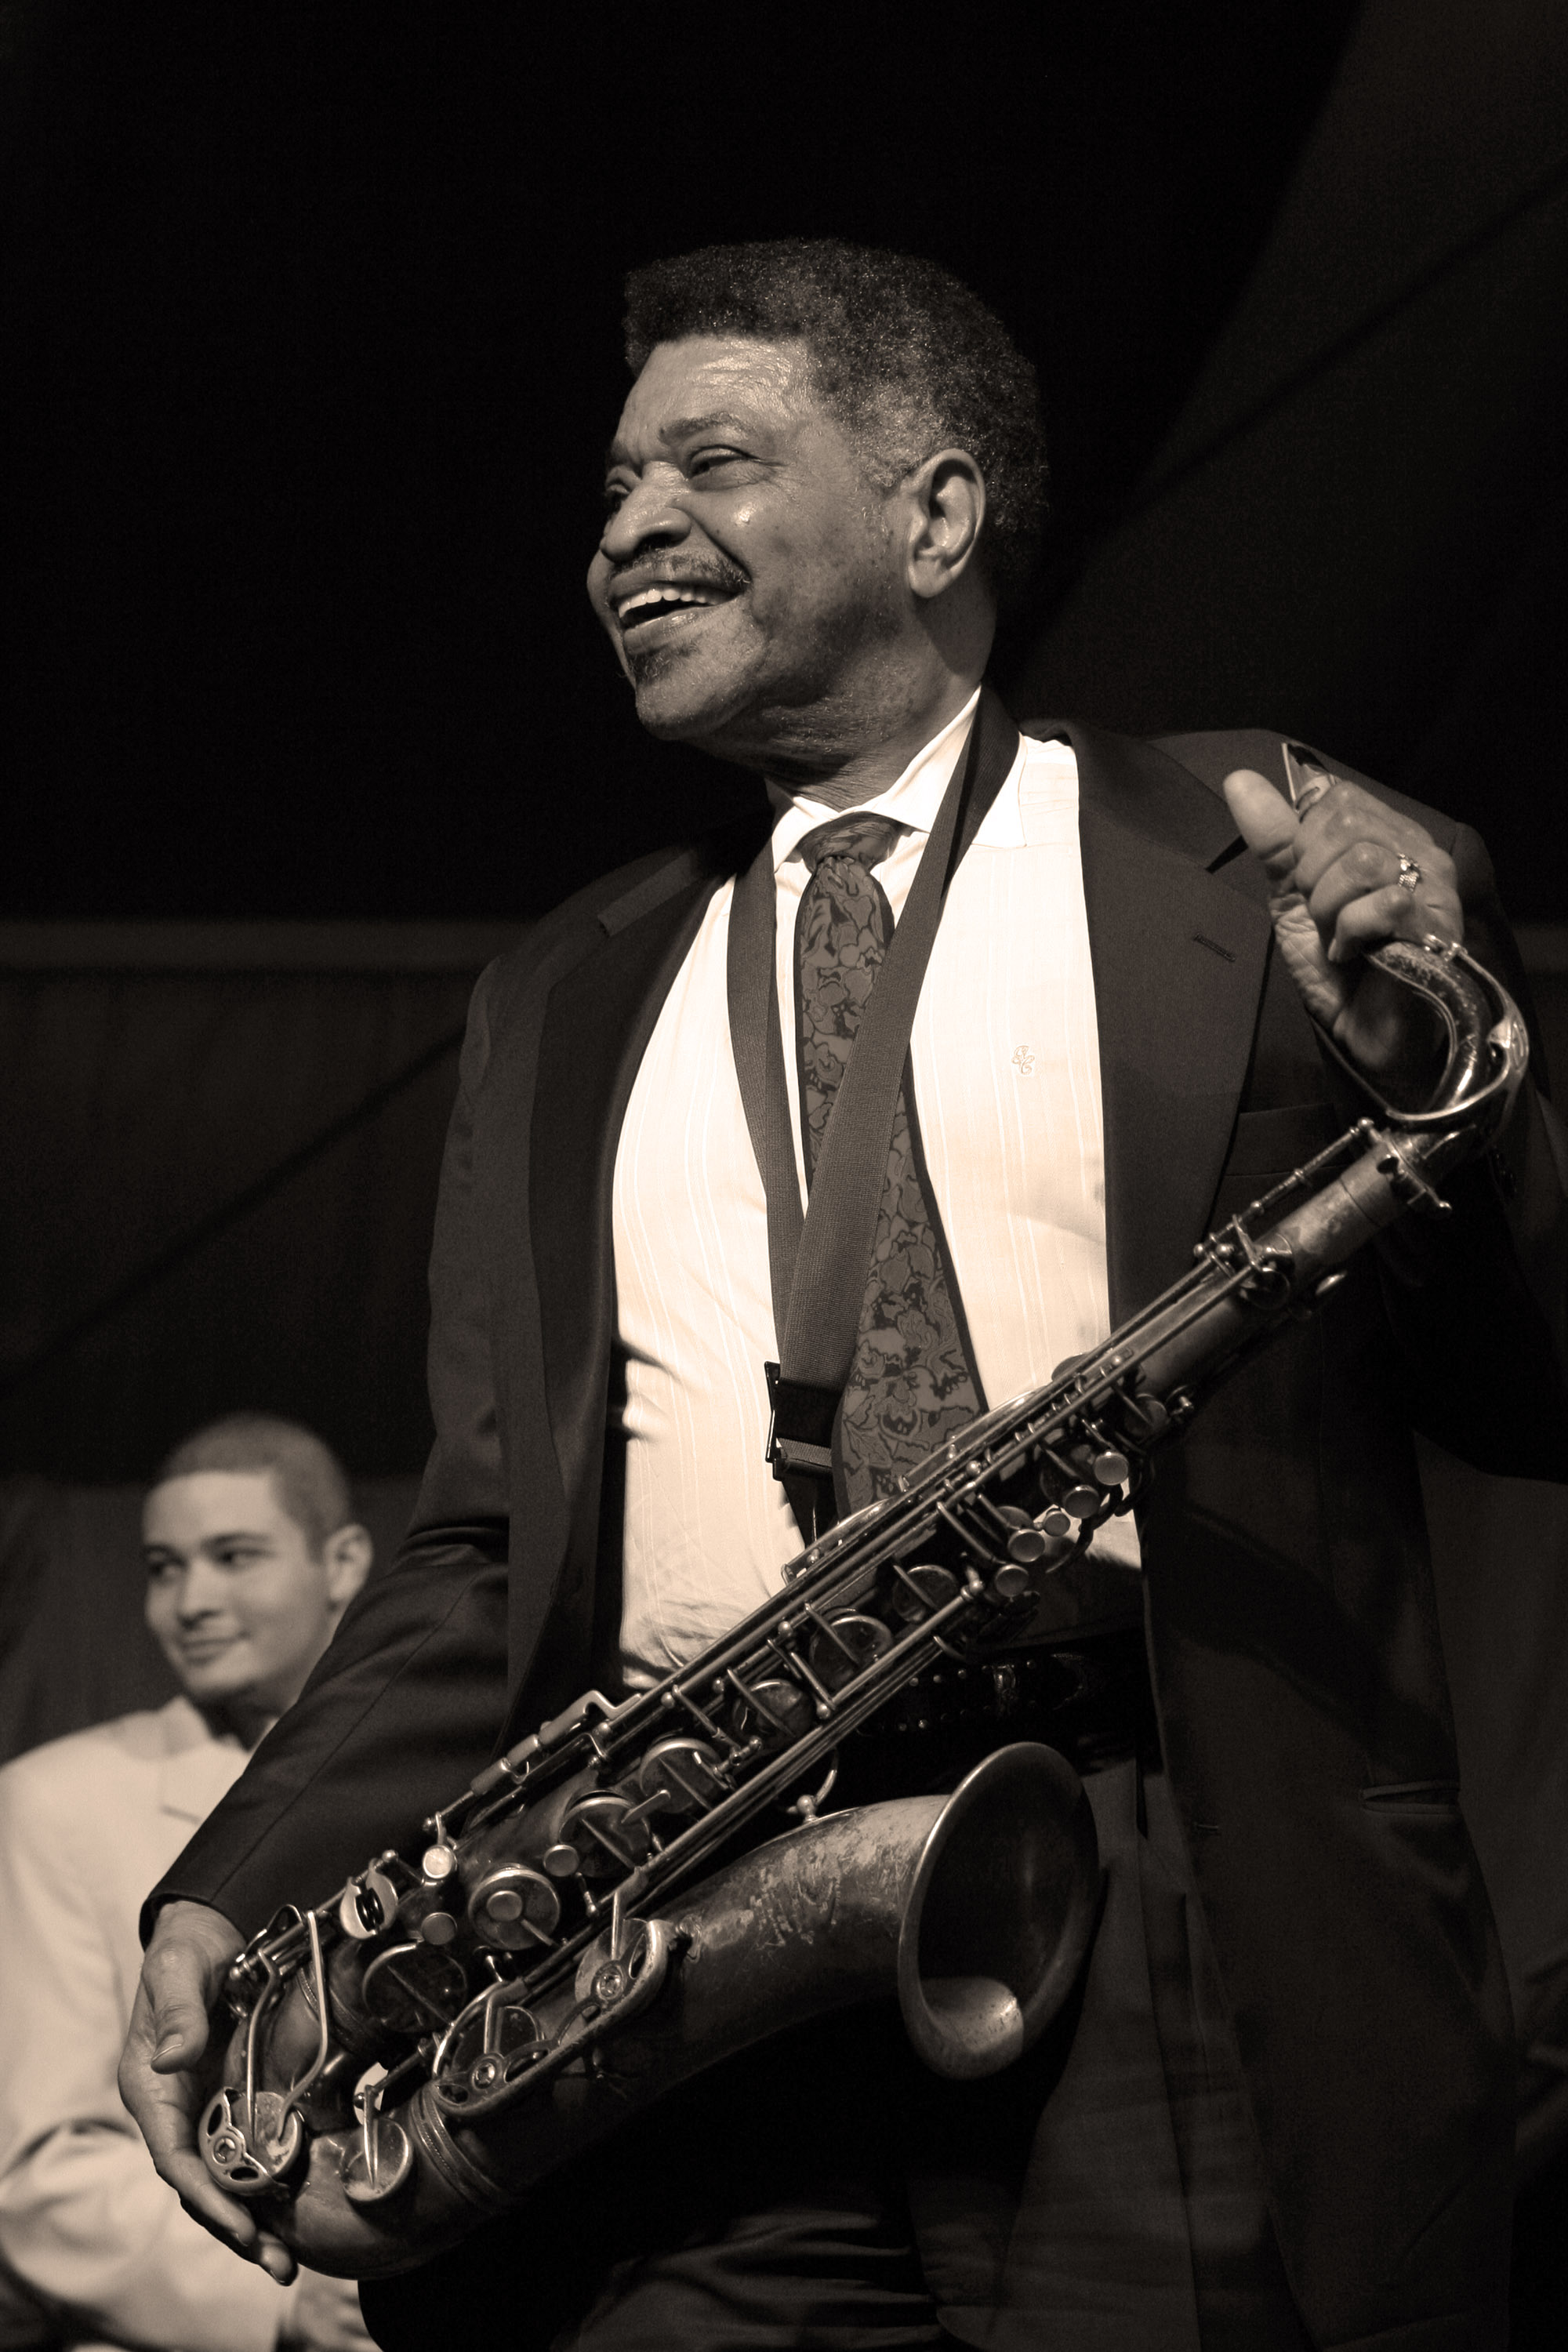 George Coleman at the New Orleans Jazz and Heritage Festival 2006